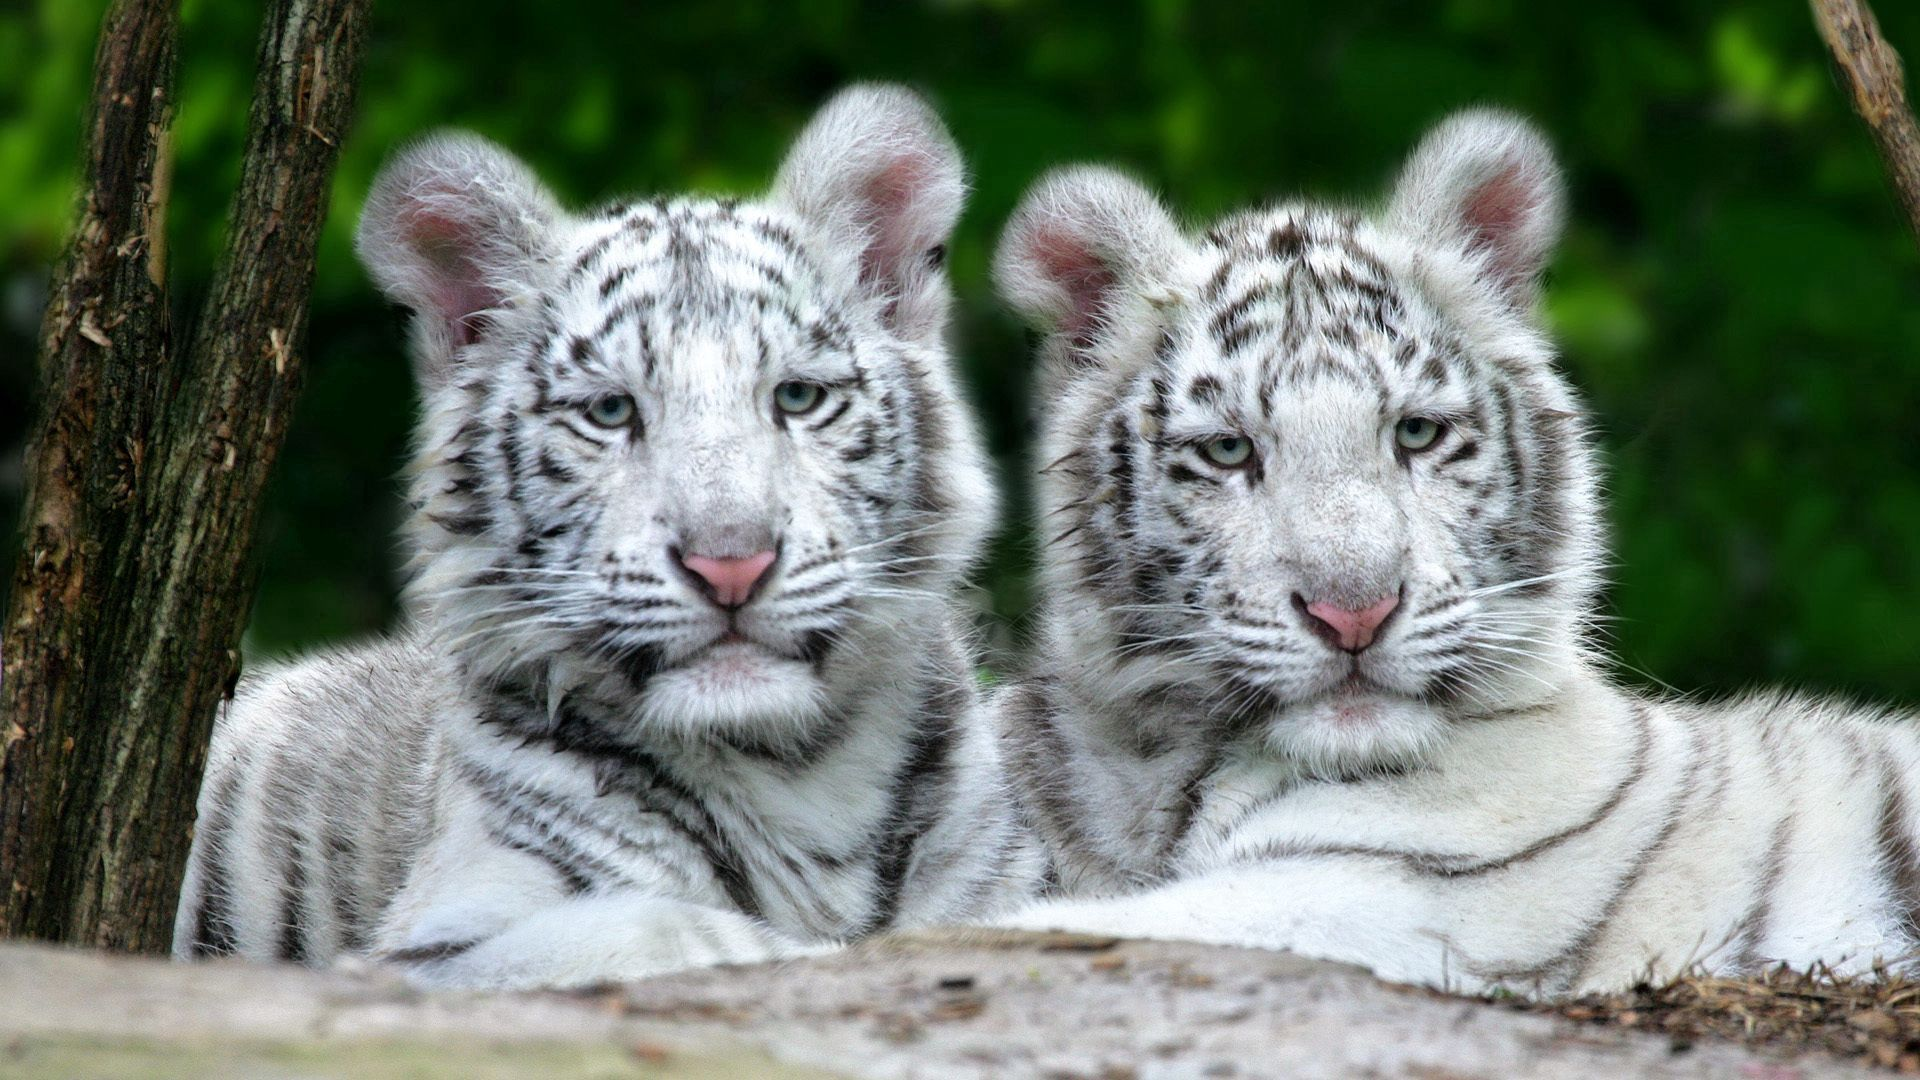 146988 download wallpaper Animals, Couple, Pair, Albino, Striped, Predator, To Lie Down, Lie, Tigers screensavers and pictures for free